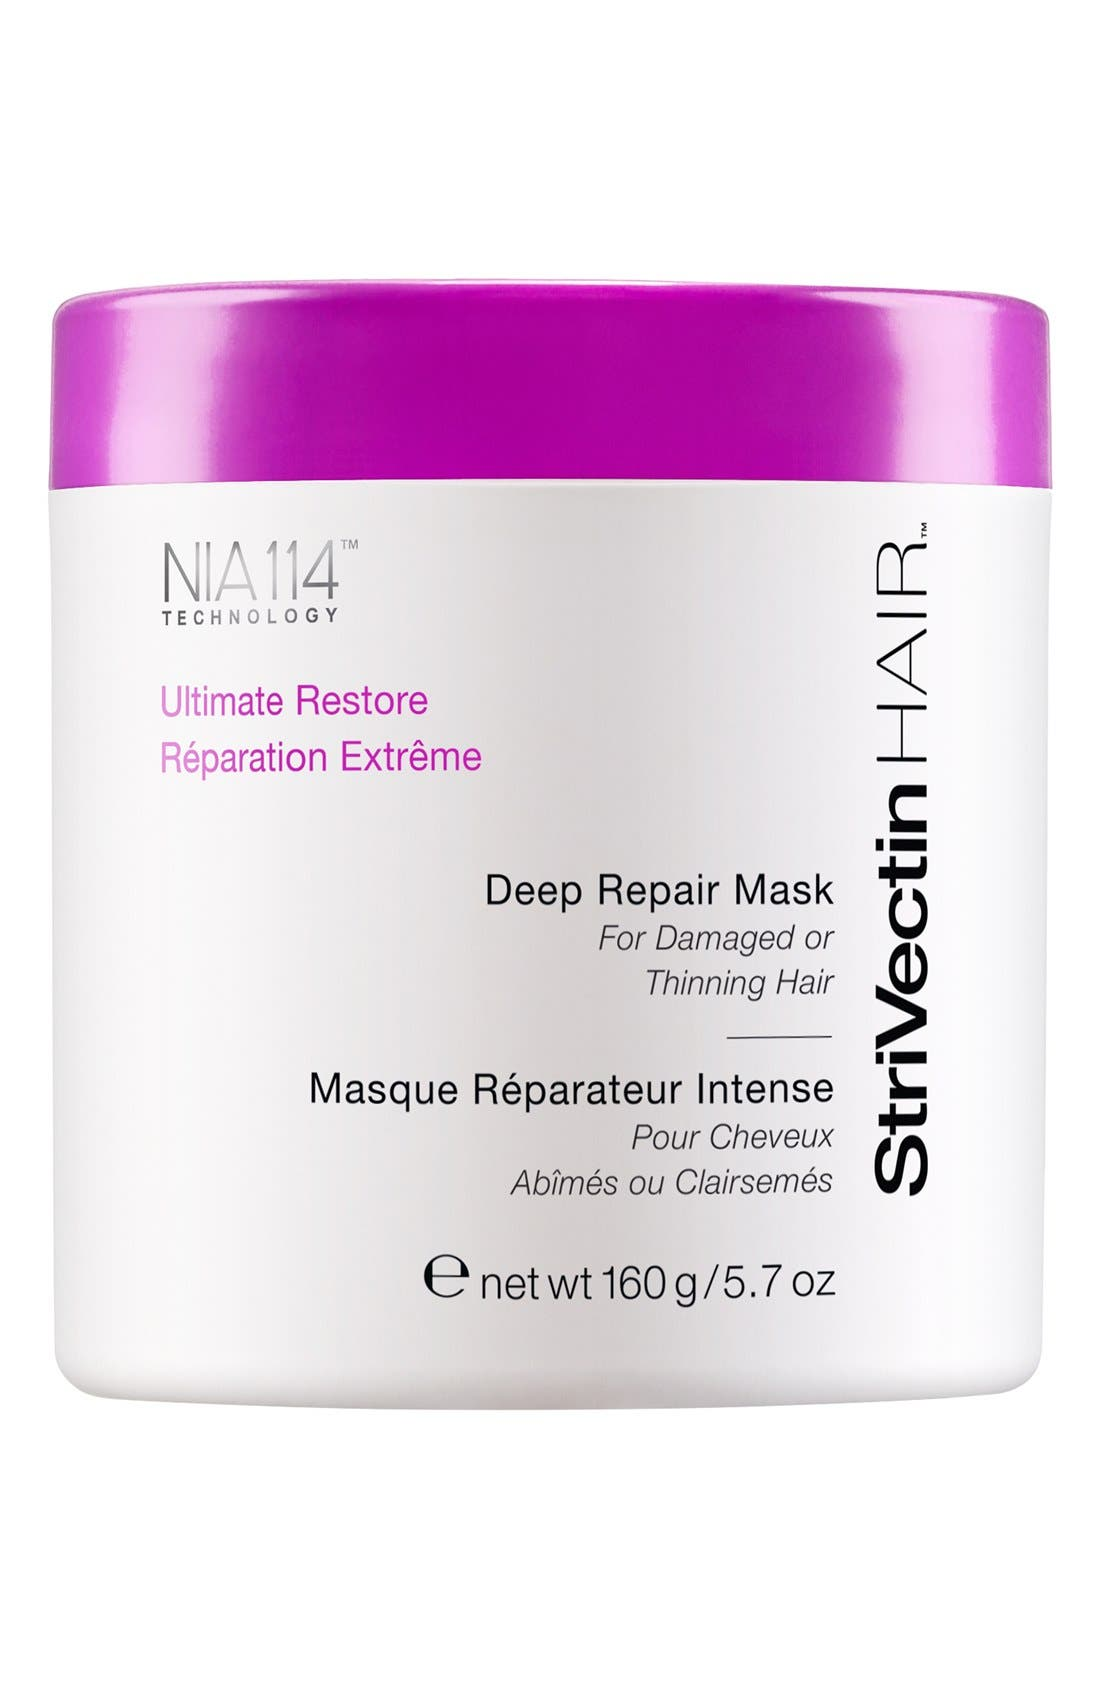 StriVectinHAIR™ 'Ultimate Restore' Deep Repair Mask for Damaged or Thinning Hair